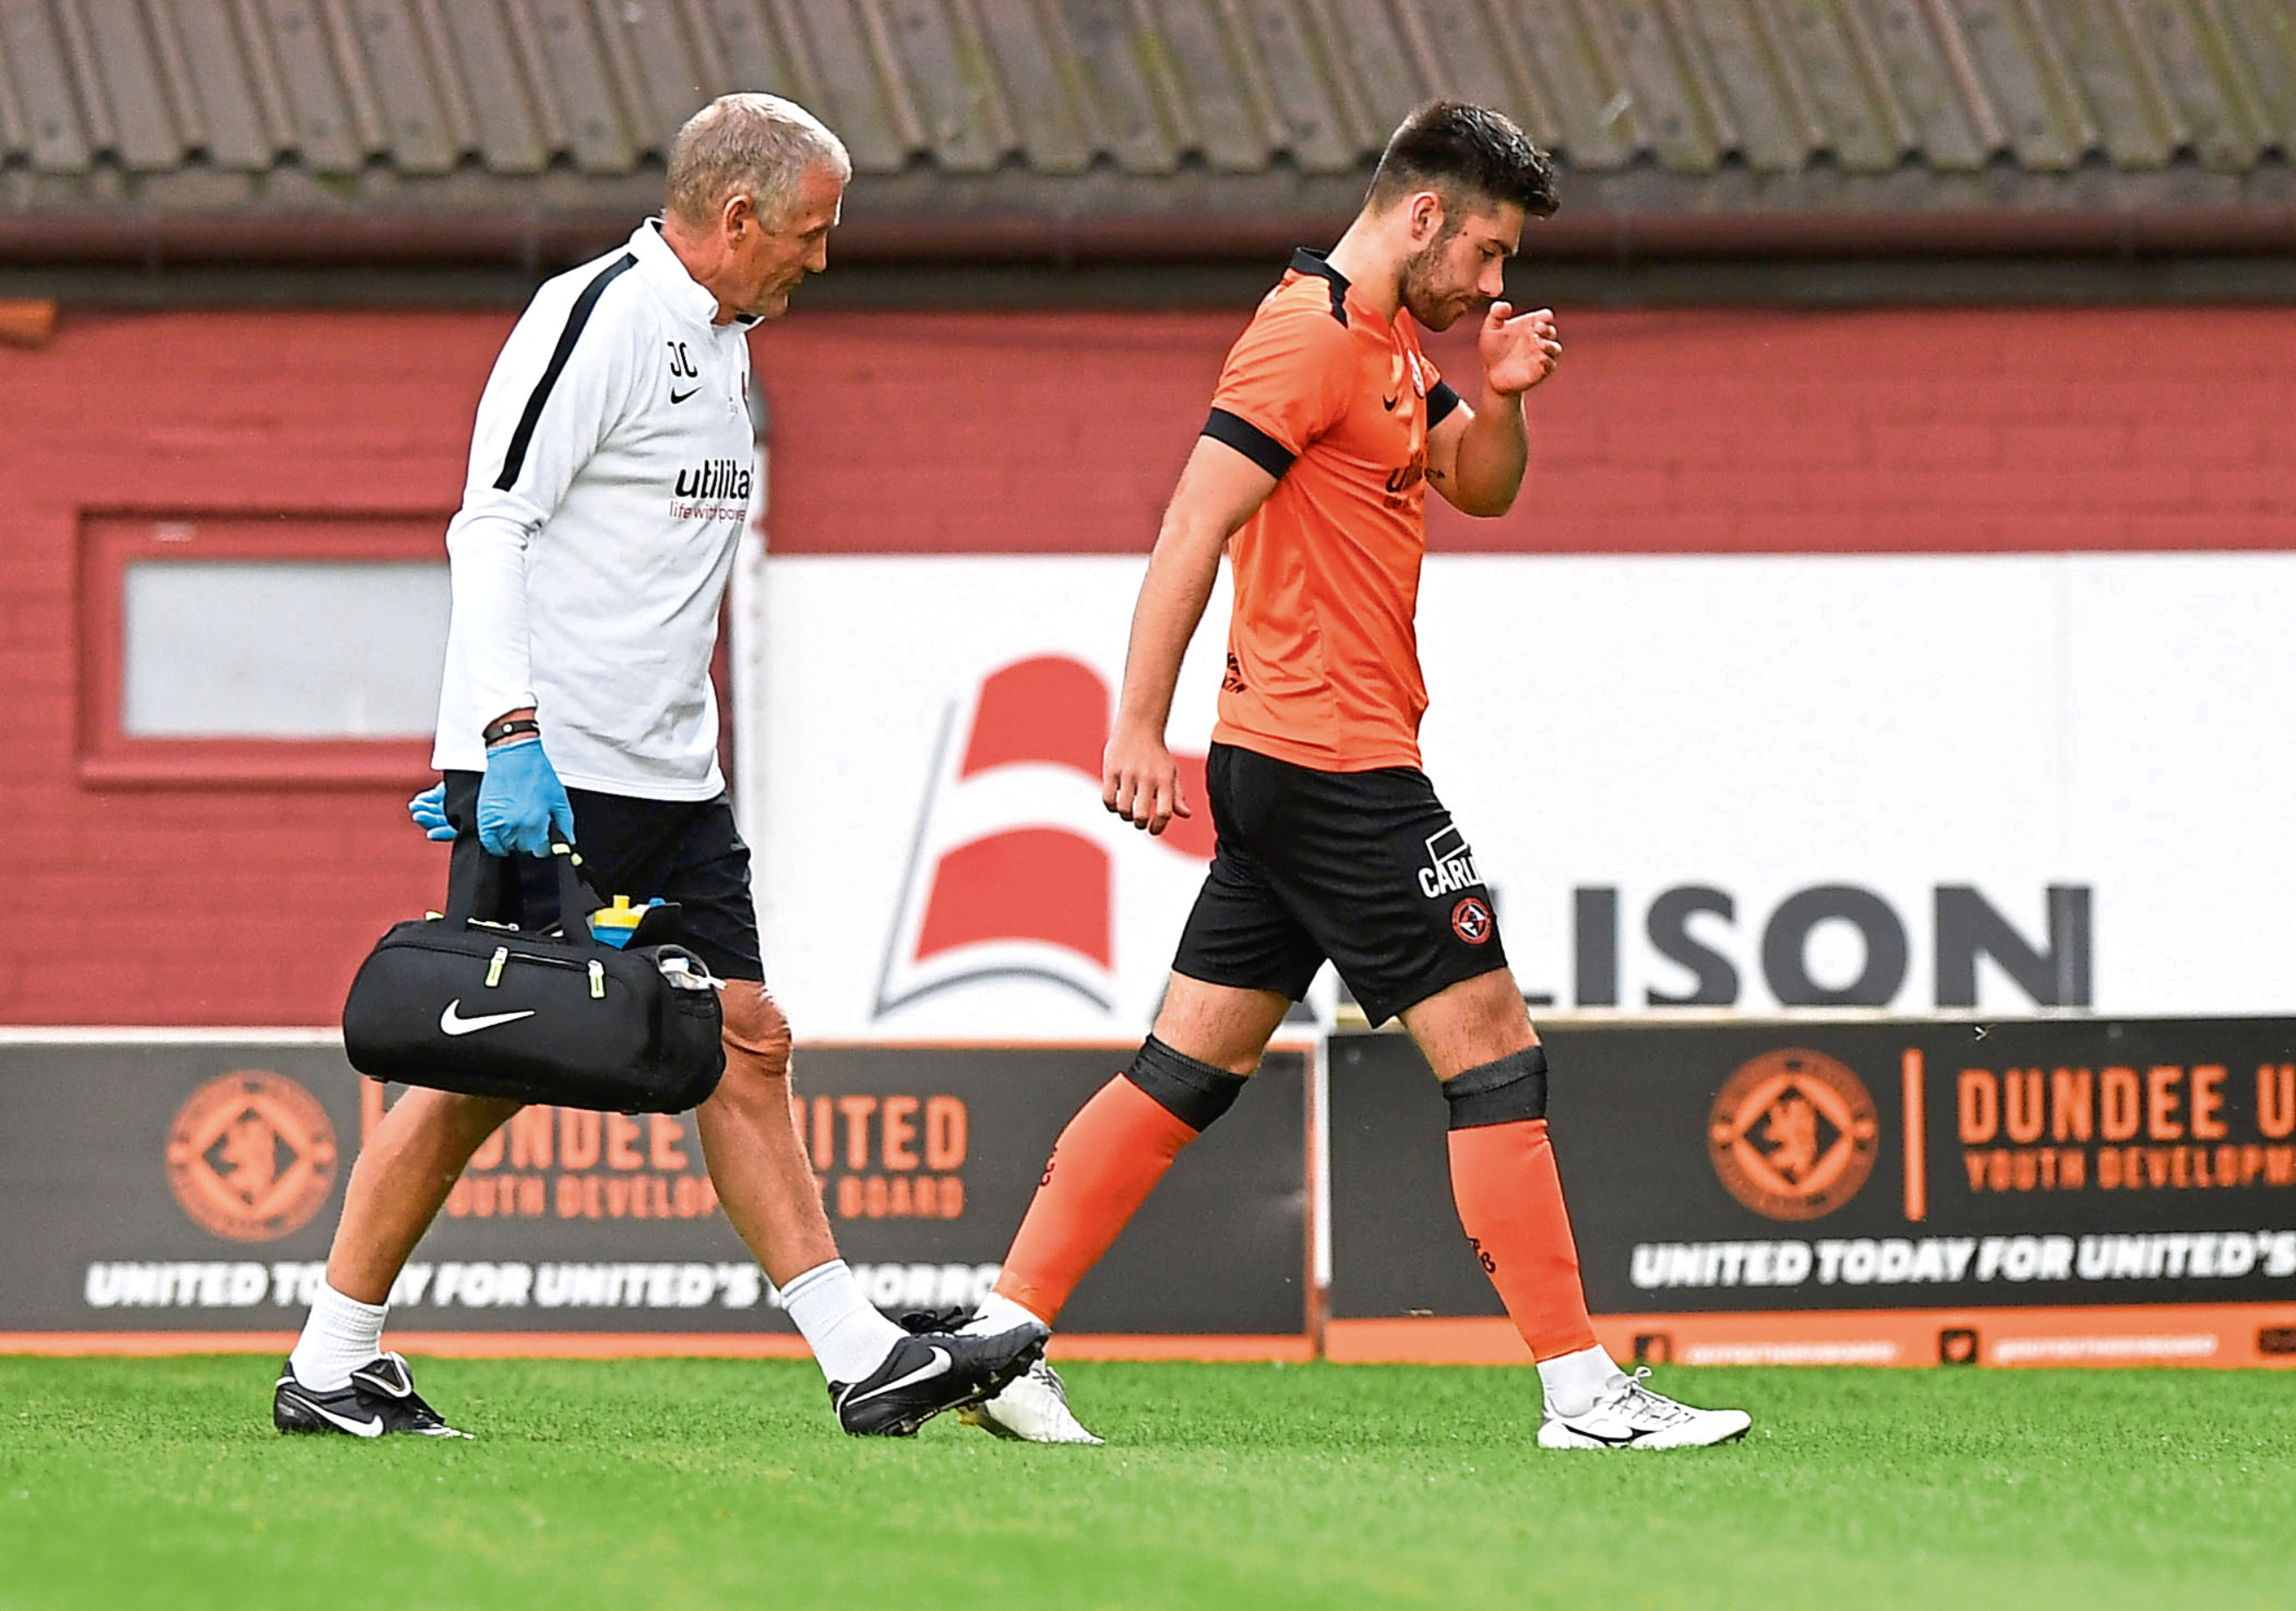 Dundee United youngster Archie Thomas went off injured in Wednesday night's 3-2 Irn-Bru Cup first-round win over St Johnstone.